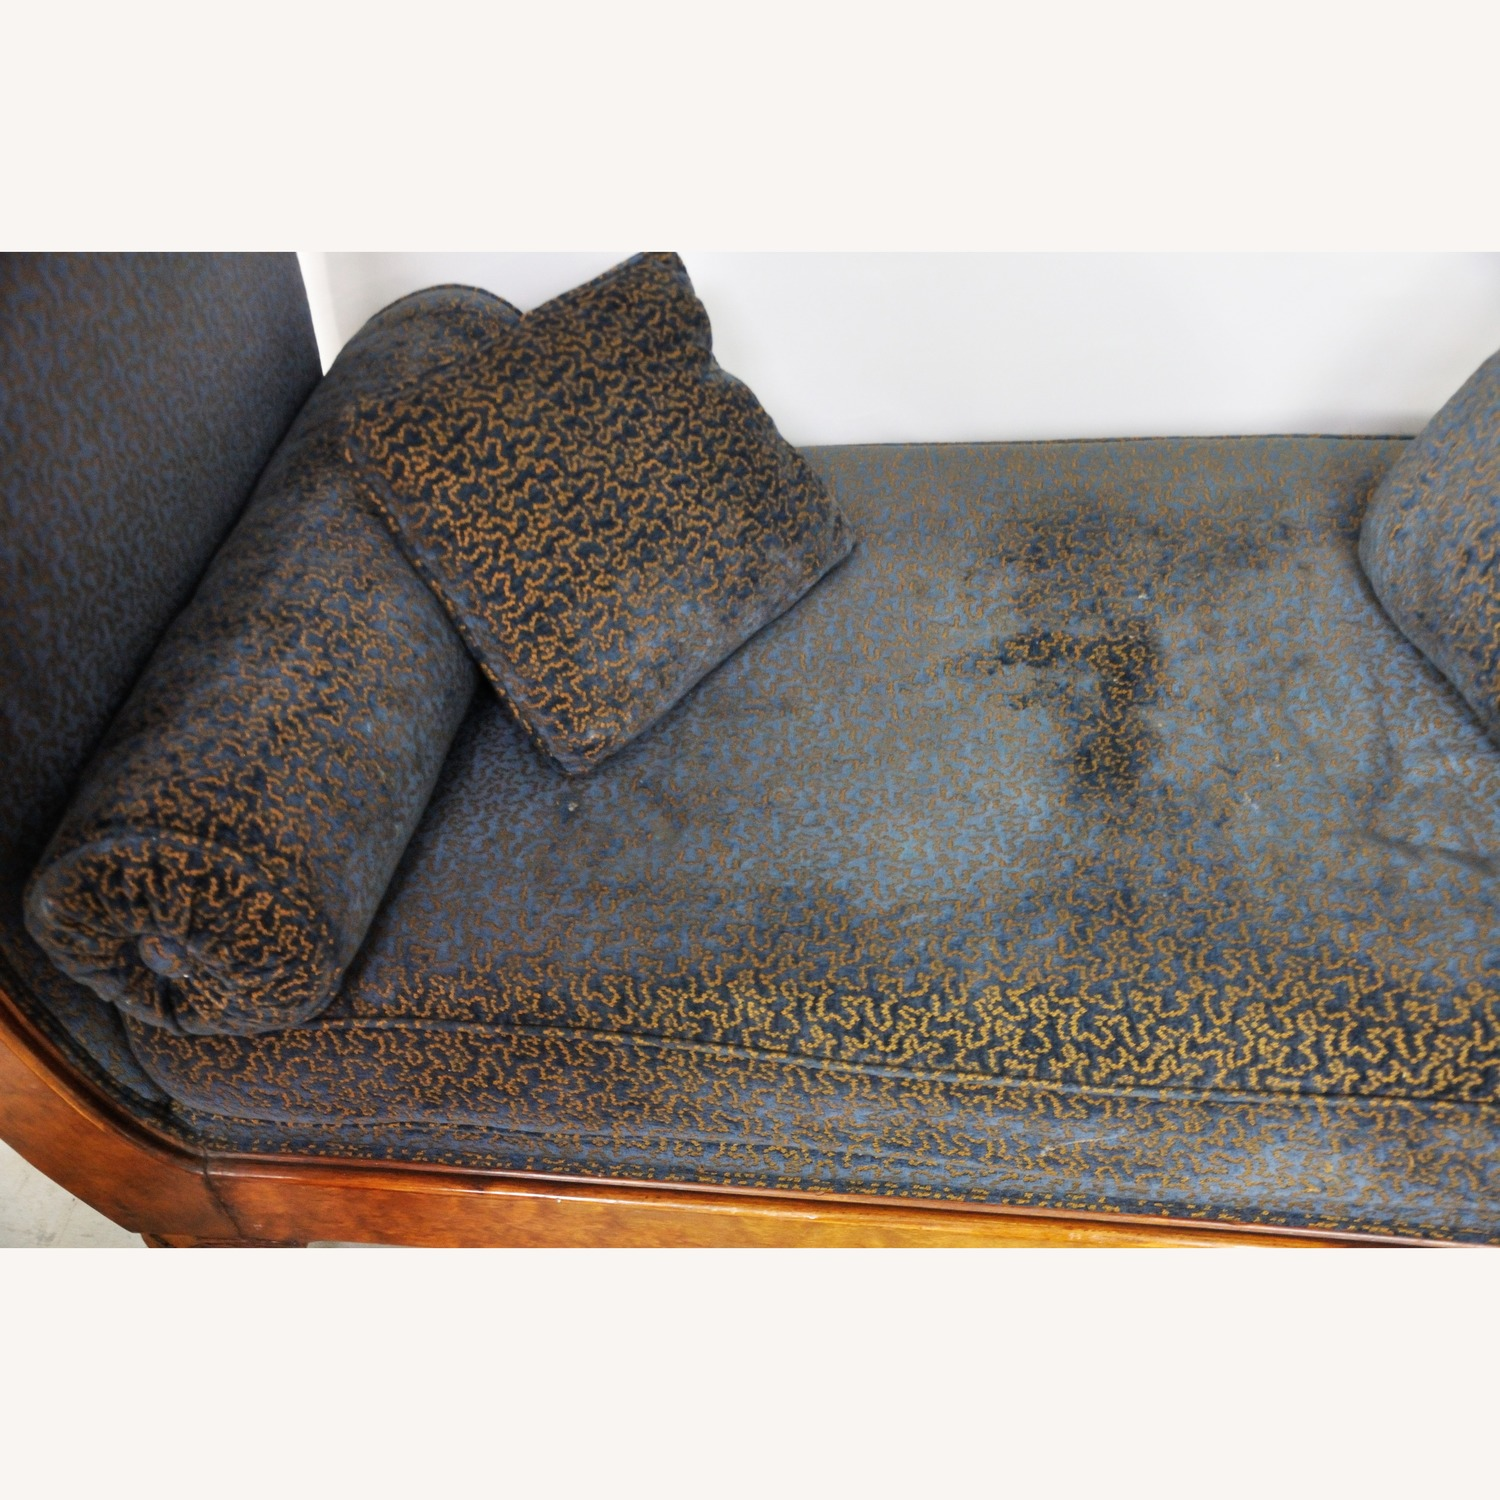 Vintage Victorian Style Sofa - image-12